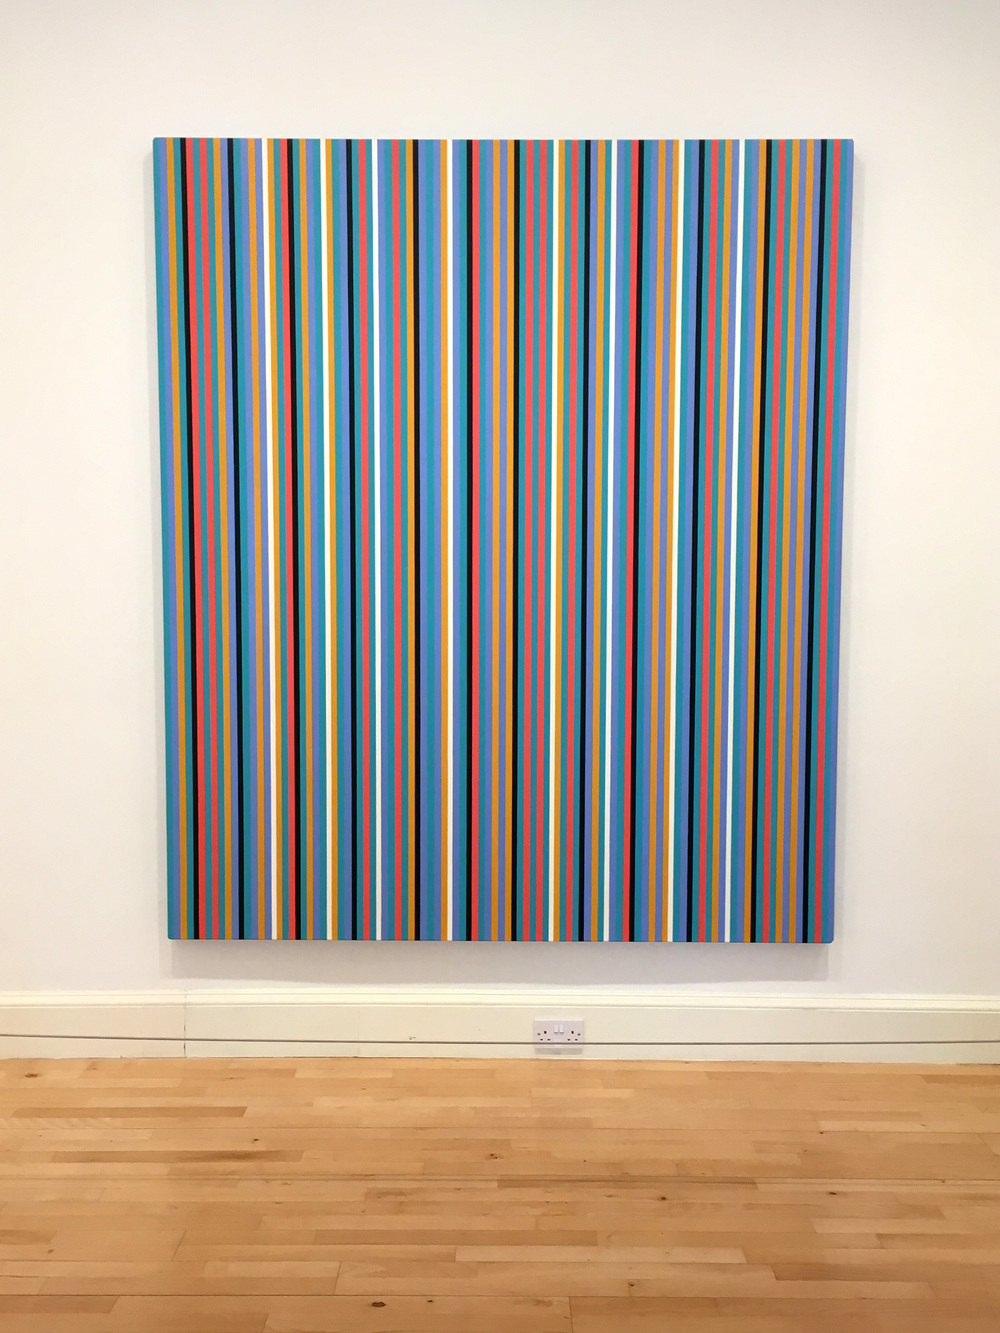 Bridget-Riley04.jpg